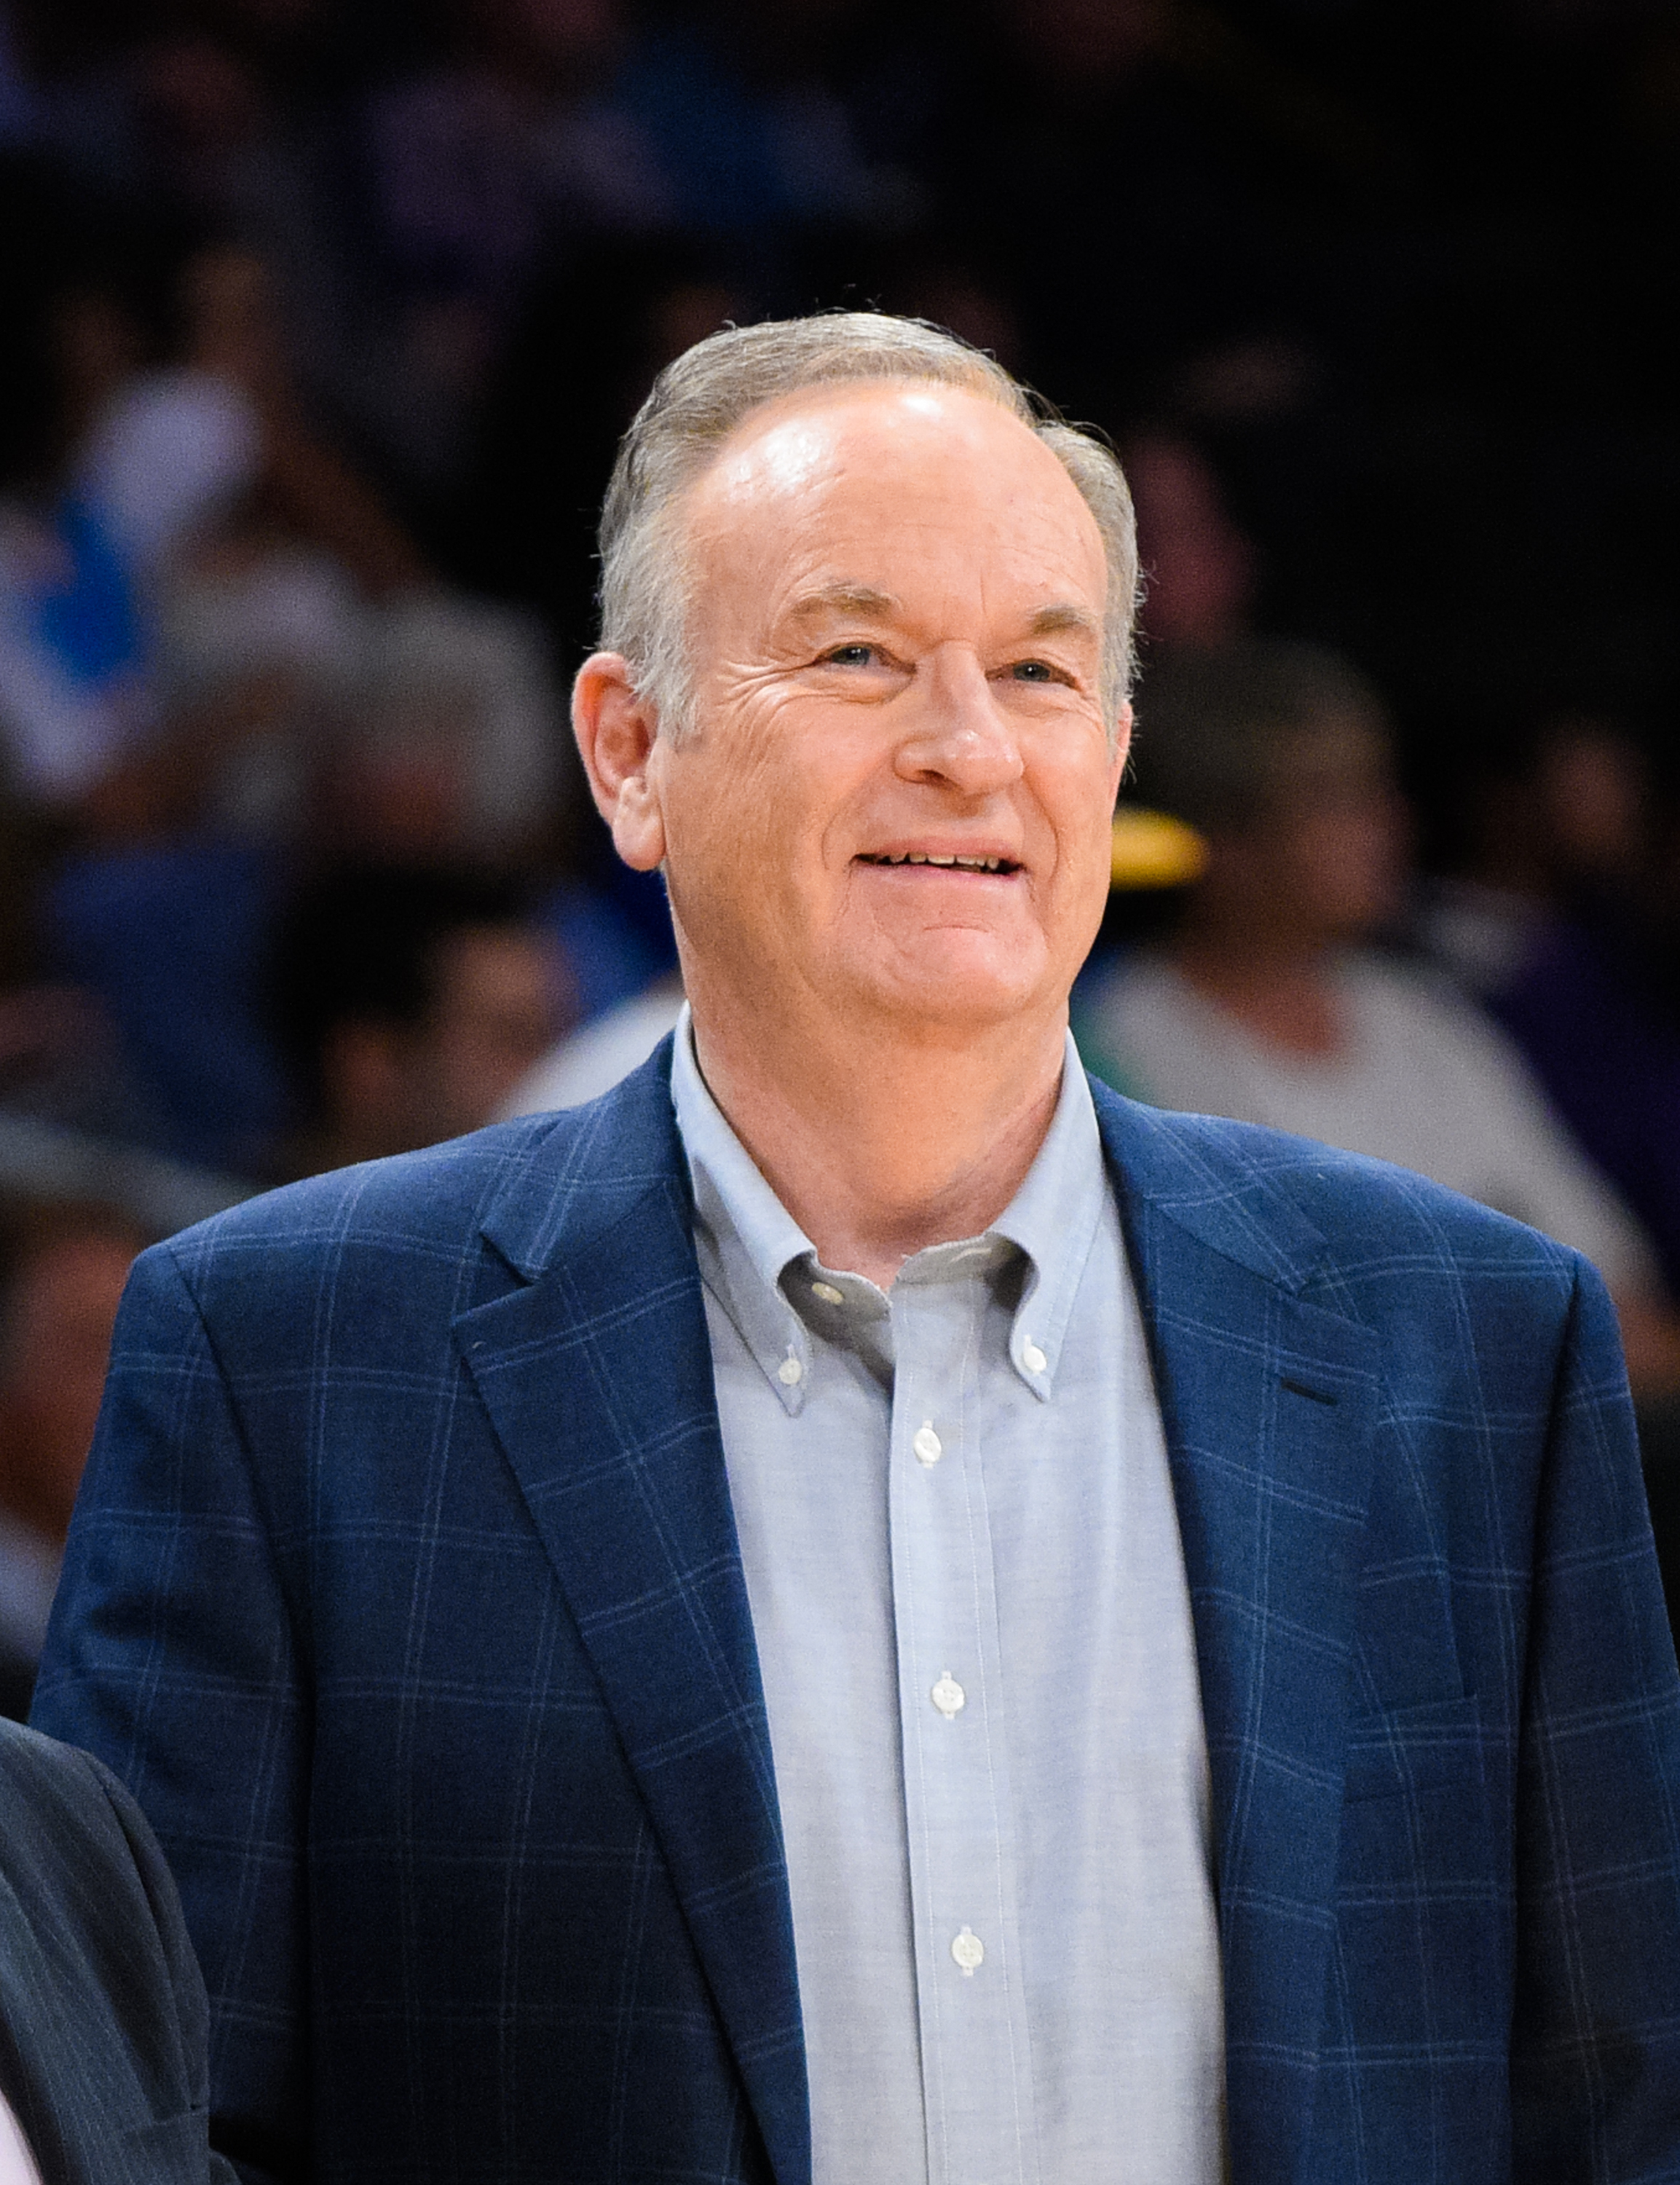 Bill O'Reilly attends a basketball game between the Denver Nuggets and the Los Angeles Lakers at Staples Center on February 10, 2015 in Los Angeles, California.